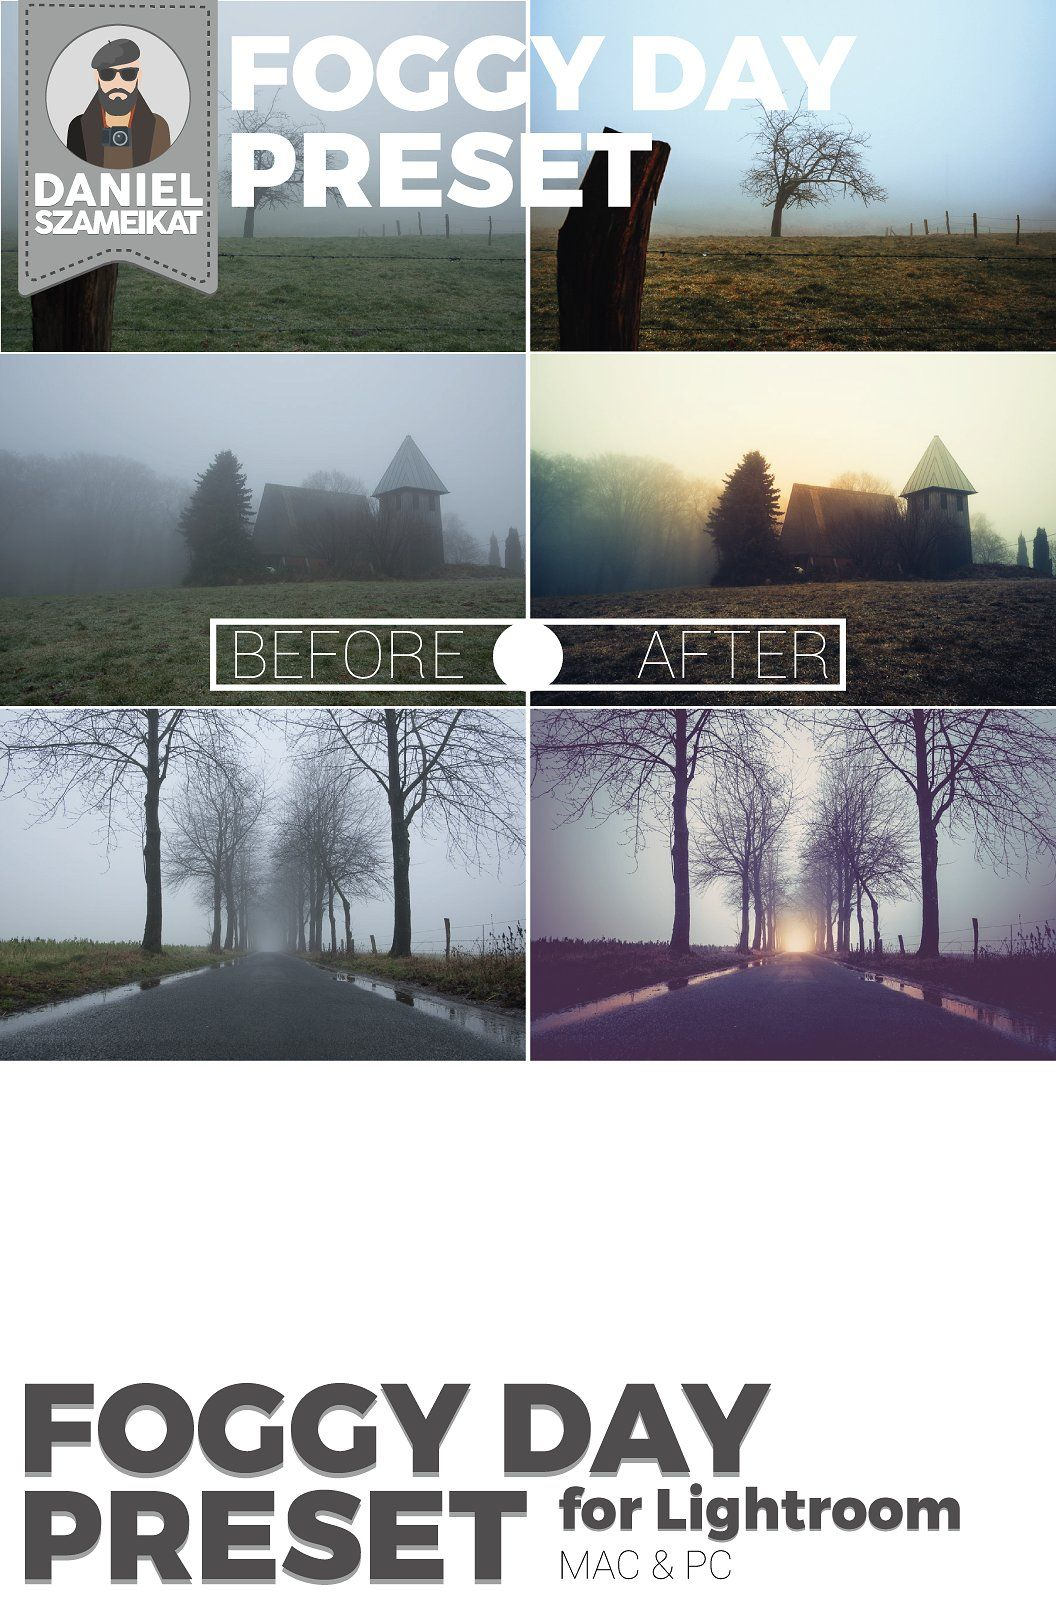 Foggy Day Lightroom Preset #Simply#copy#included#download